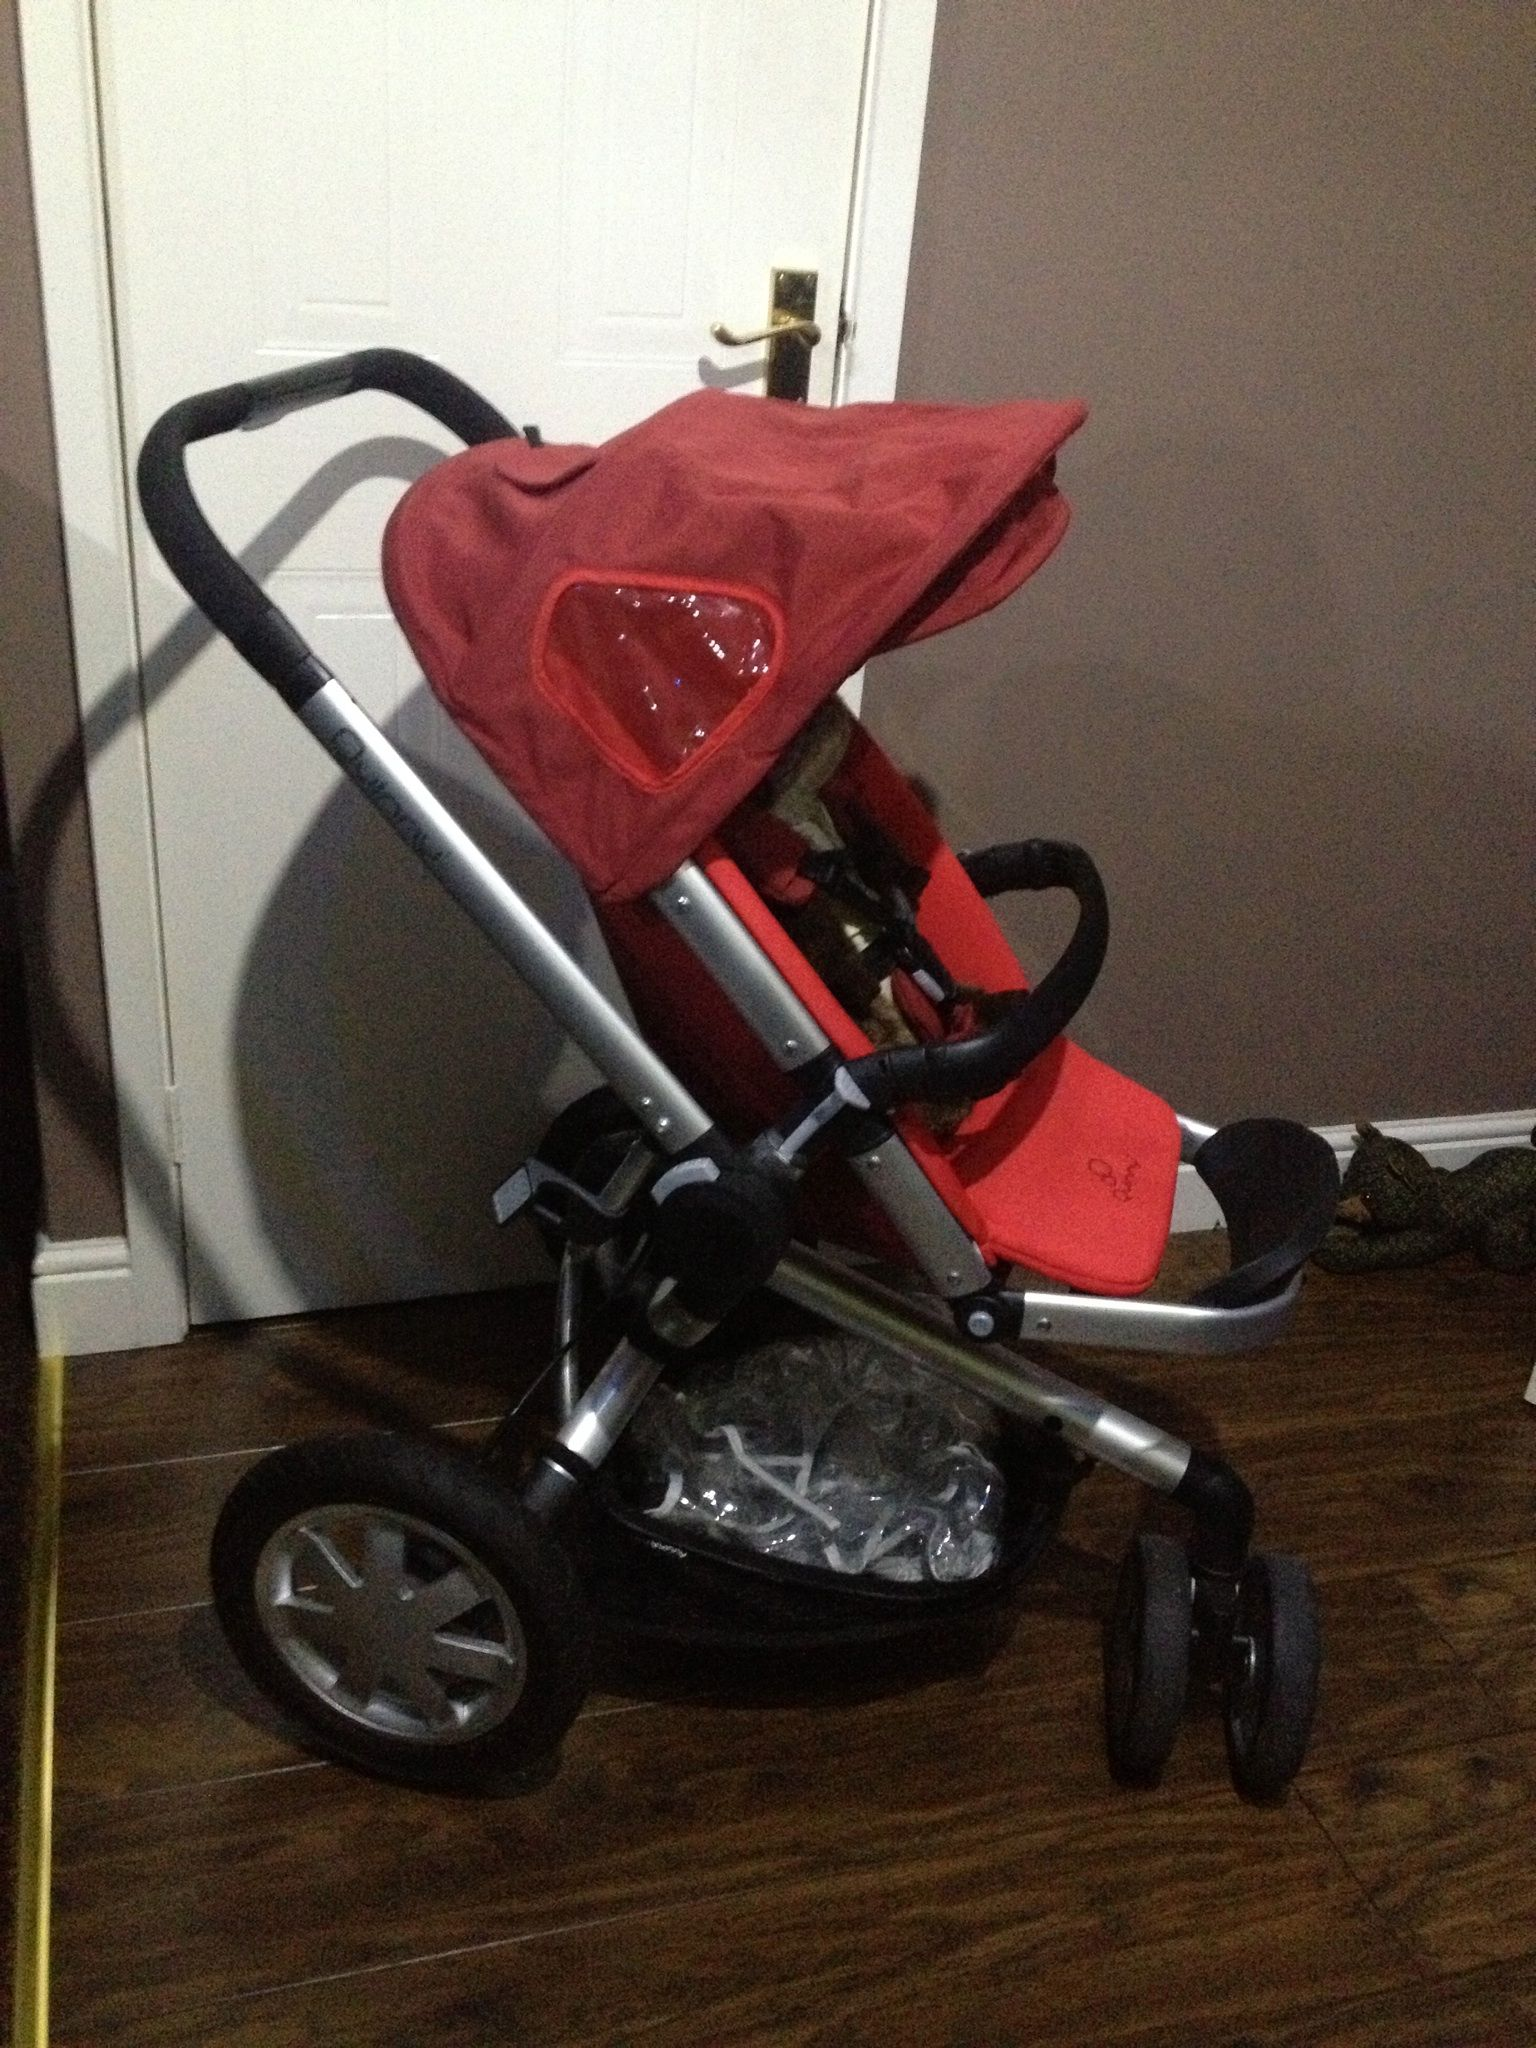 Quinny Buzz pushchair, purchased 2nd hand from gumtree, in